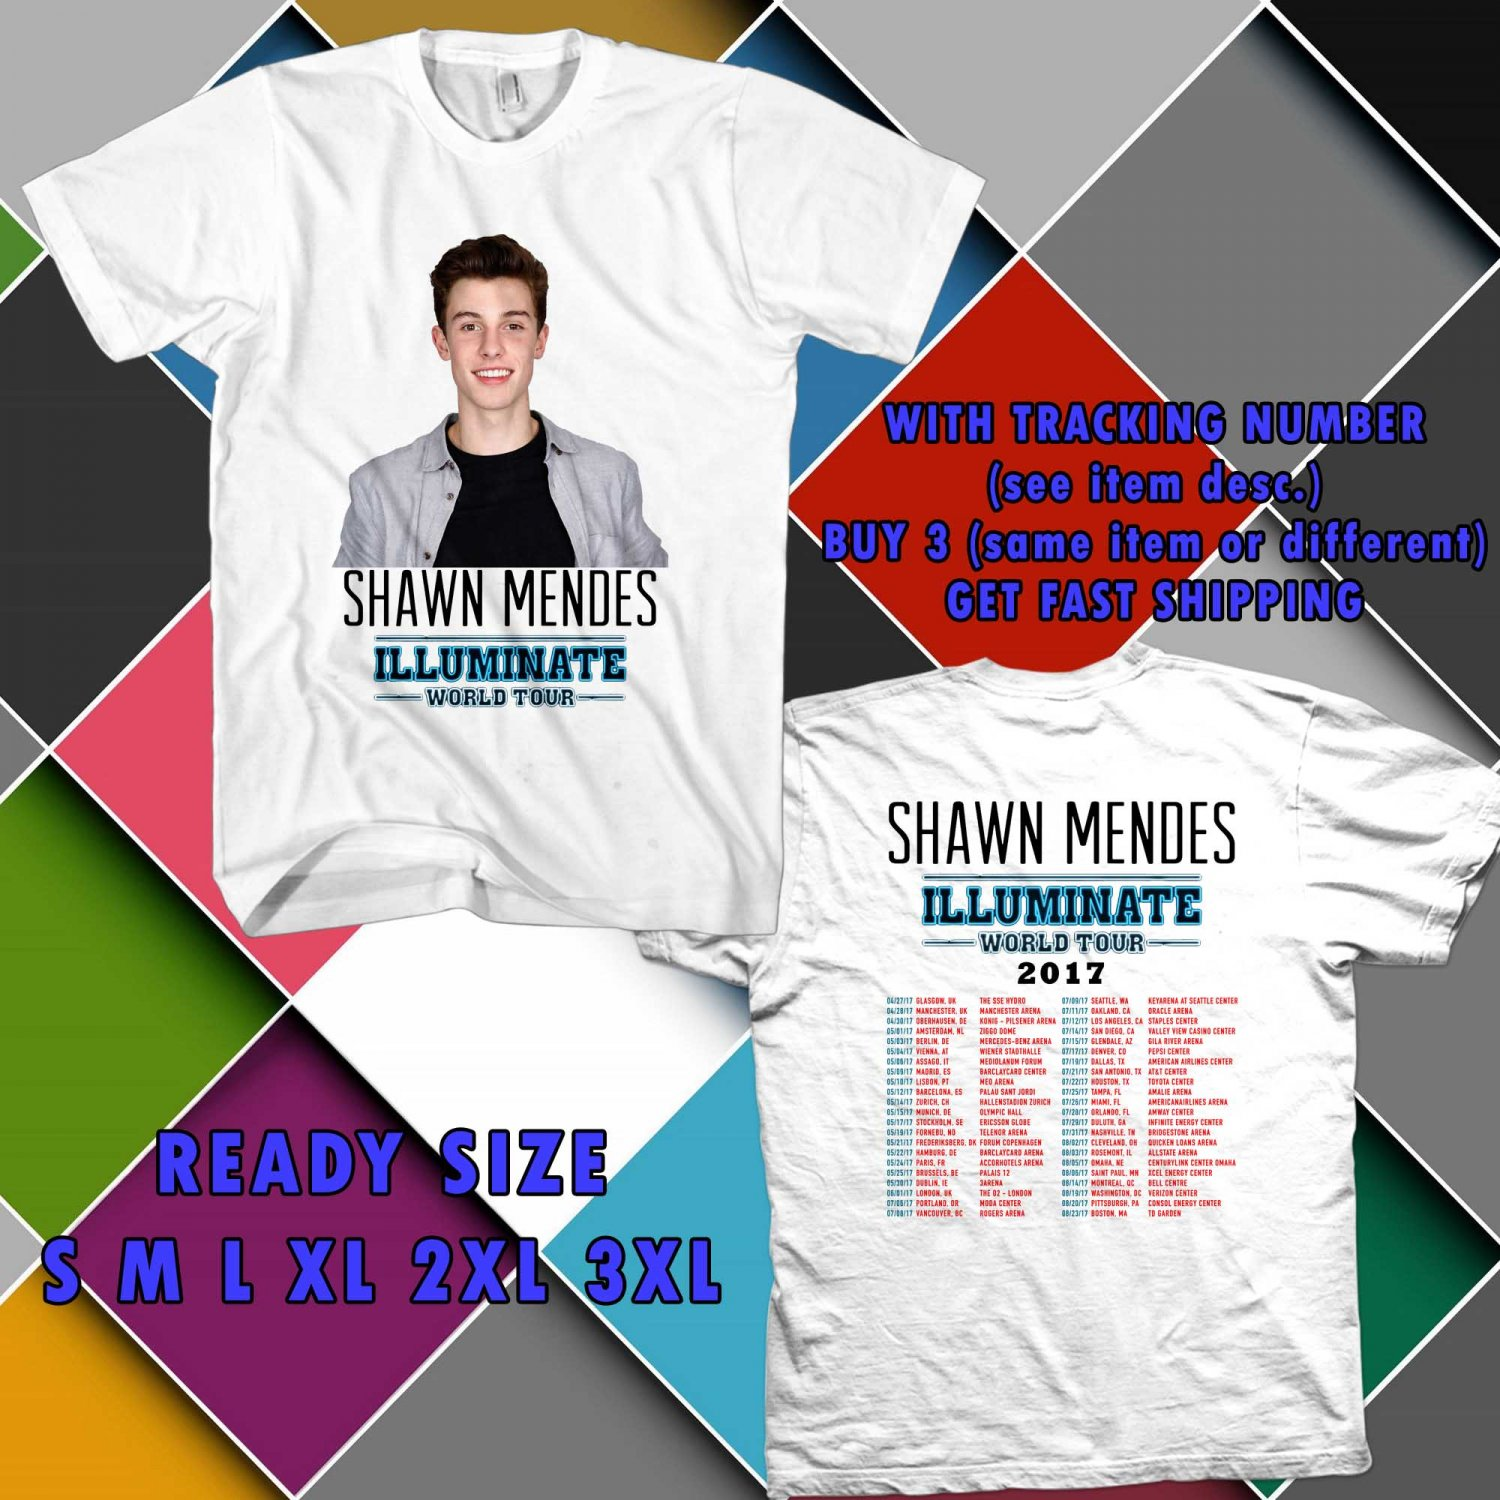 WOW S. MENDES ILLUMINATE WORLD TOUR 2017 WHITE TEE S-3XL ASTR